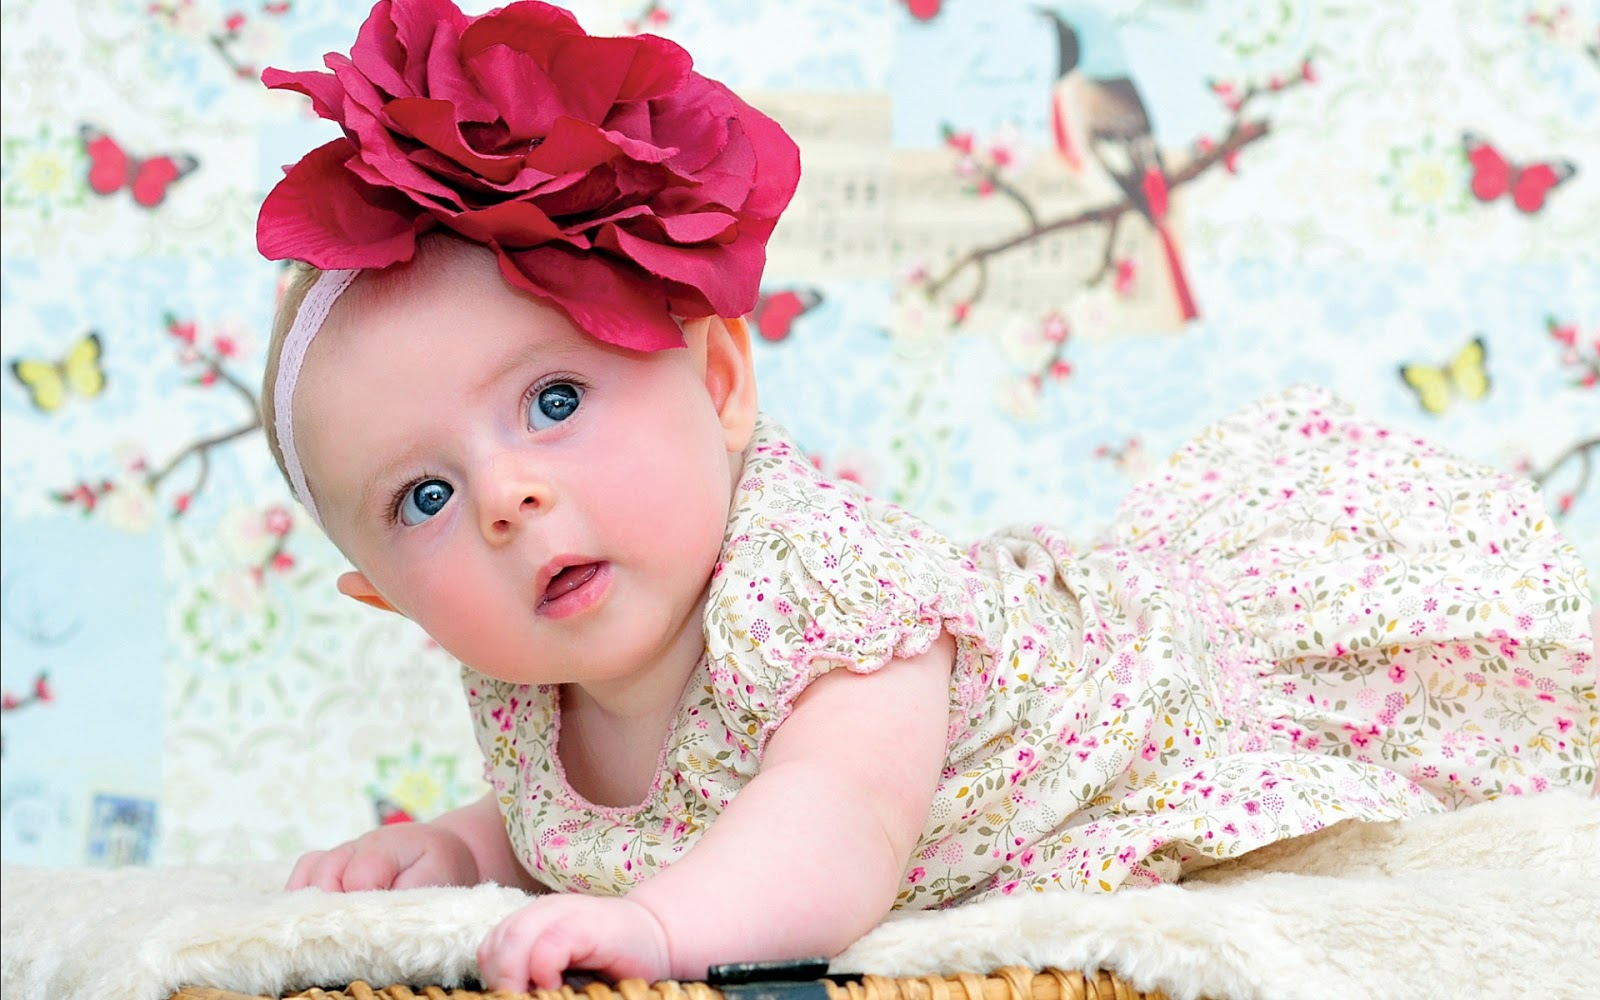 Cute Baby Download Wallpaper